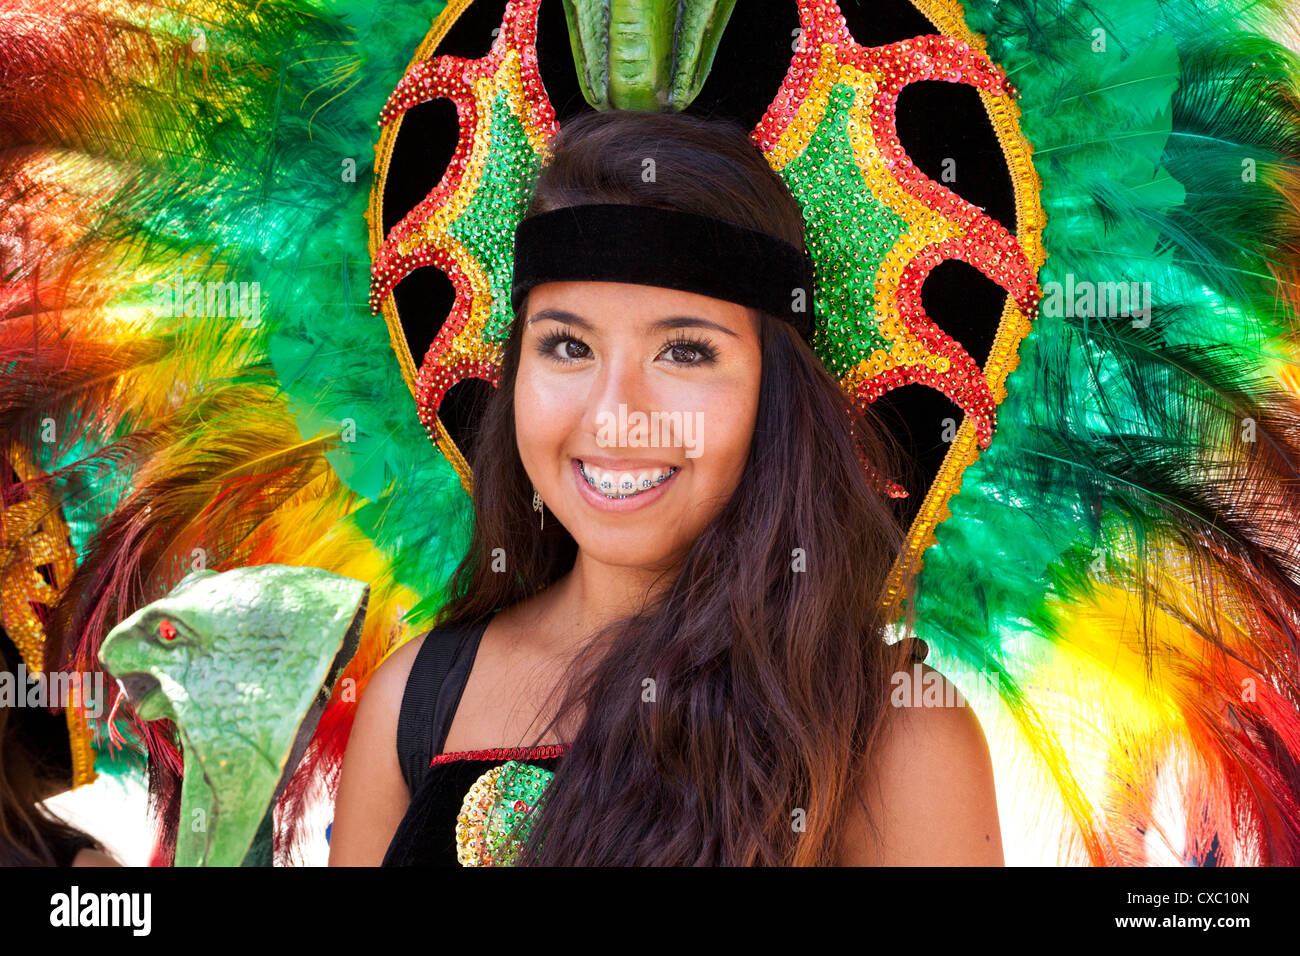 Bolivian traditional folk dancer with feather headdress at Latino festival - Washington, DC USA - Stock Image